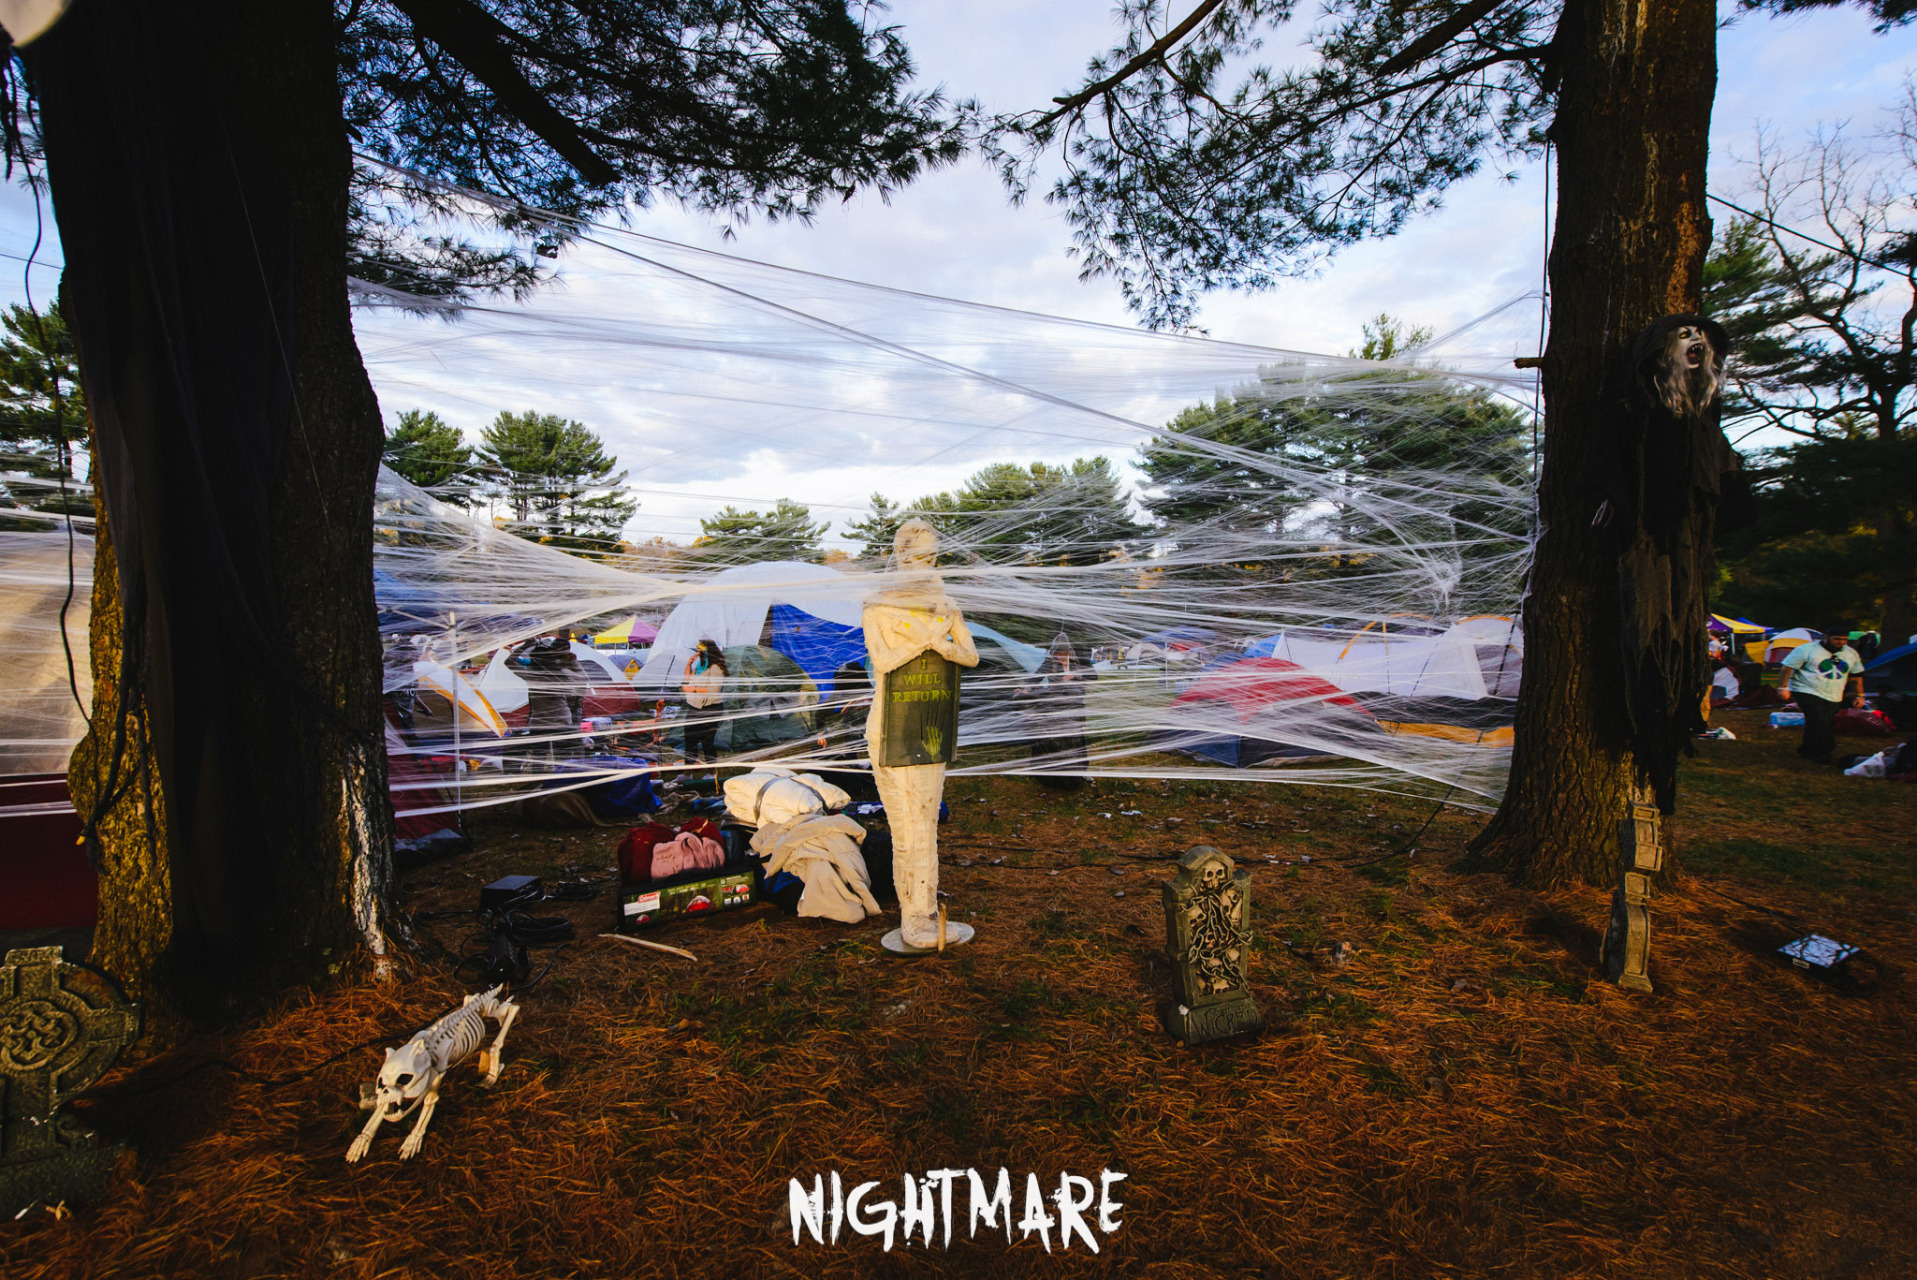 Nightmare_day1-4